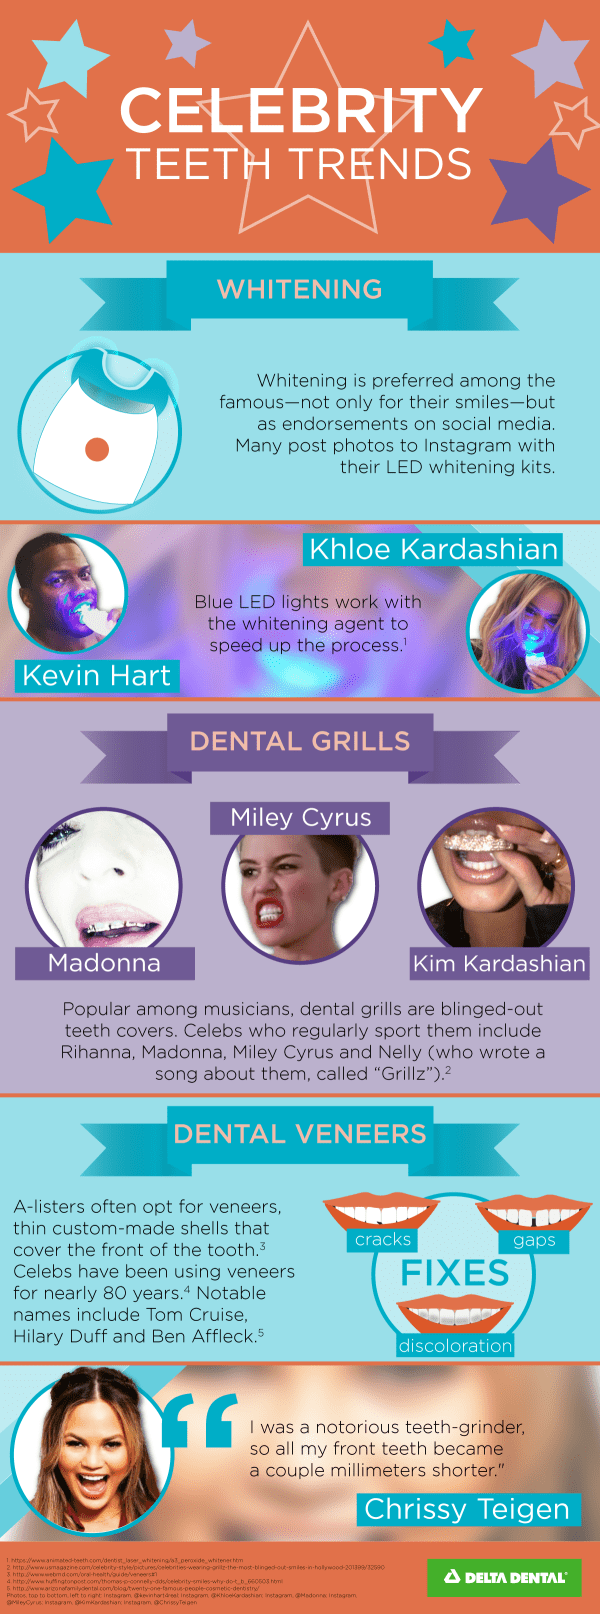 celebrity teeth trends infographic